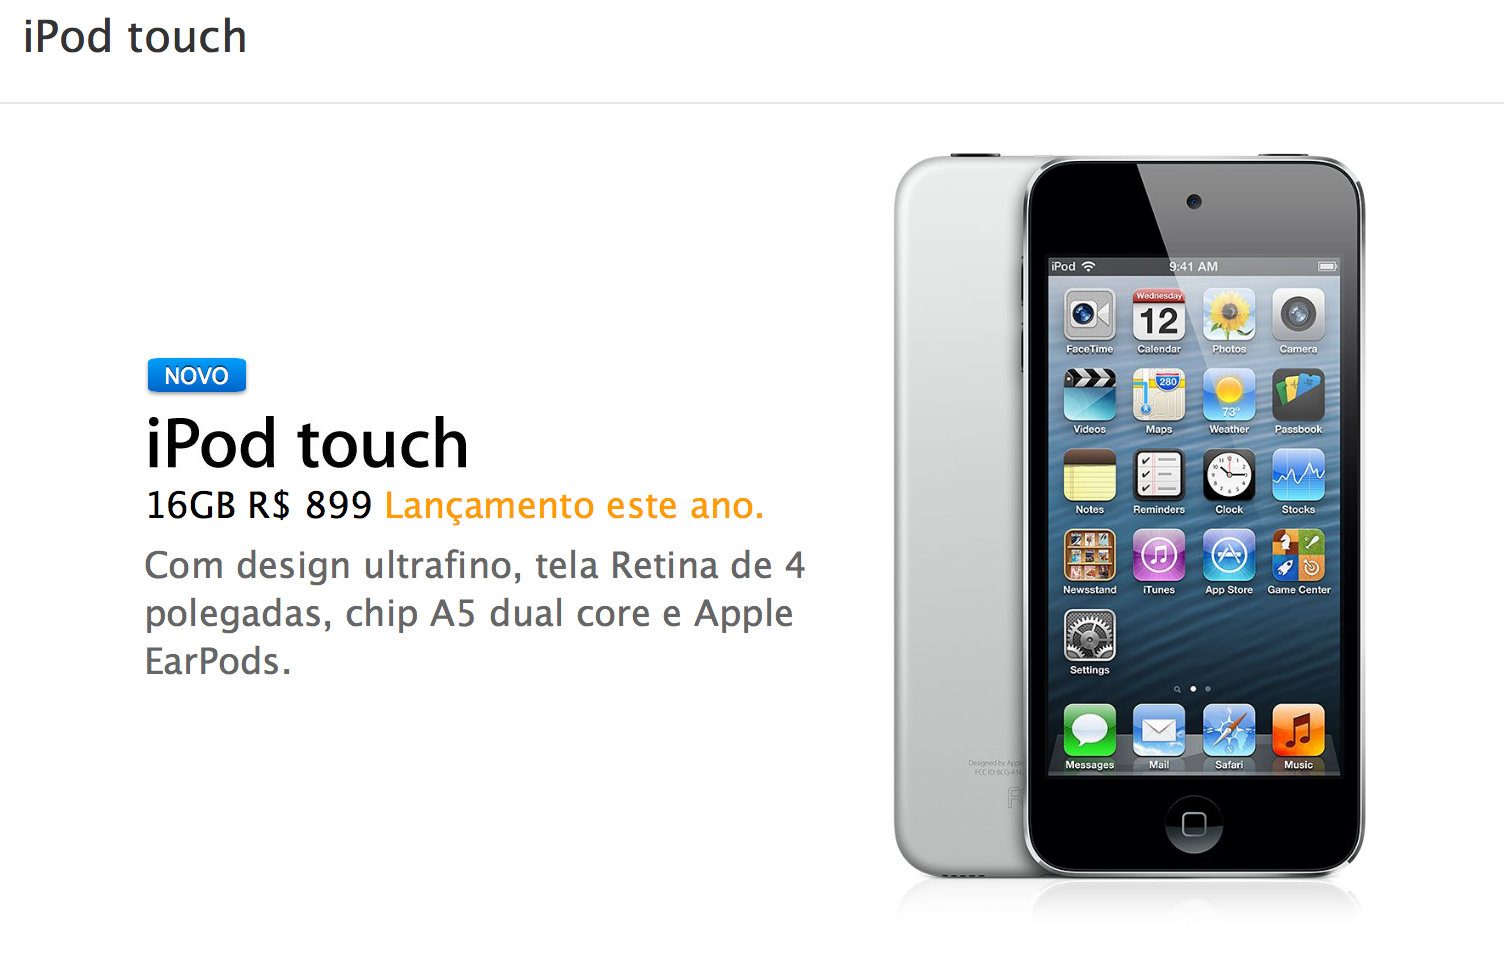 iPod touch sem iSight